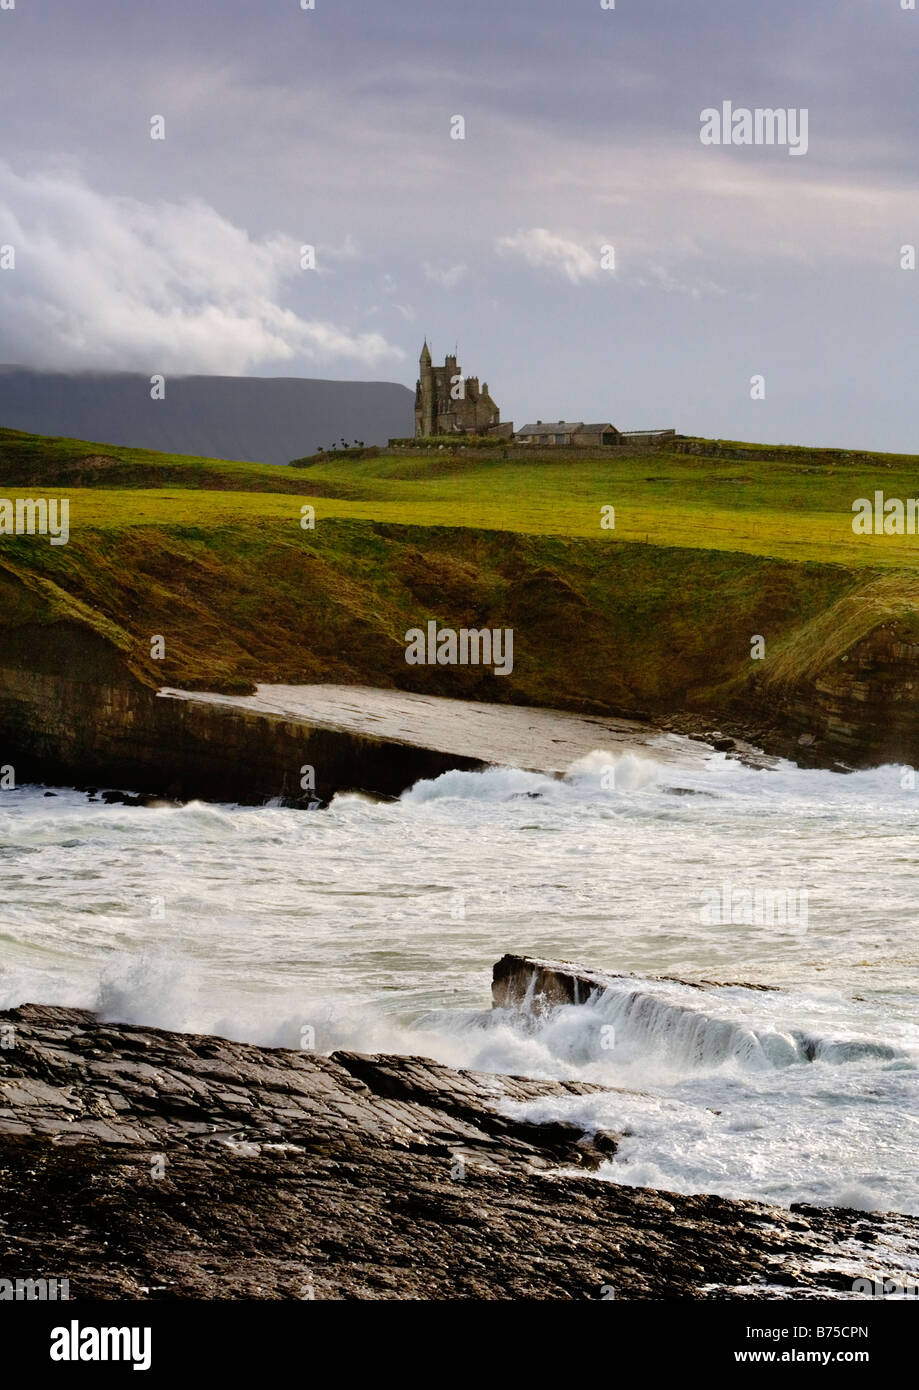 Classiebawn Castle, in County Sligo, on the west coast of Ireland and once the home of Lord Mountbatten. - Stock Image